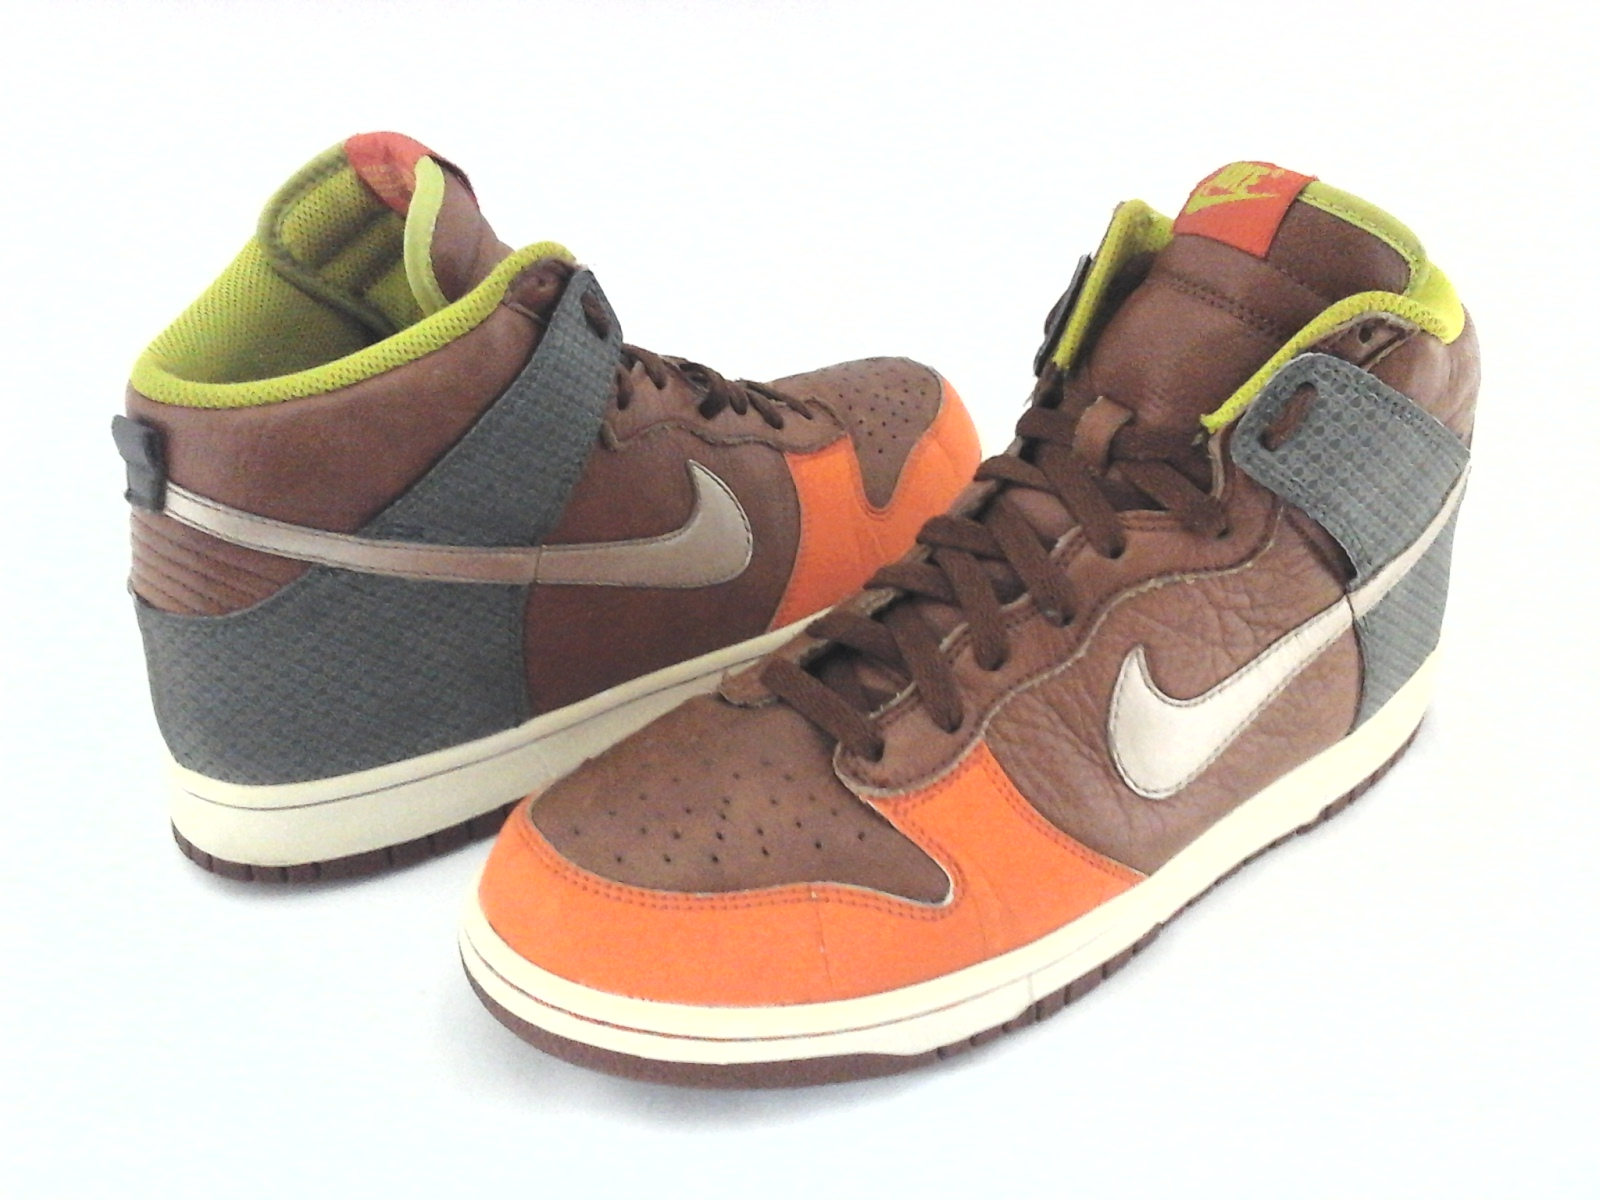 cae398cfed71 Details about NIKE Shoes 312786-891 Brown Gray Orange High Top Sneakers Mens  US 10.5 44.5 RARE